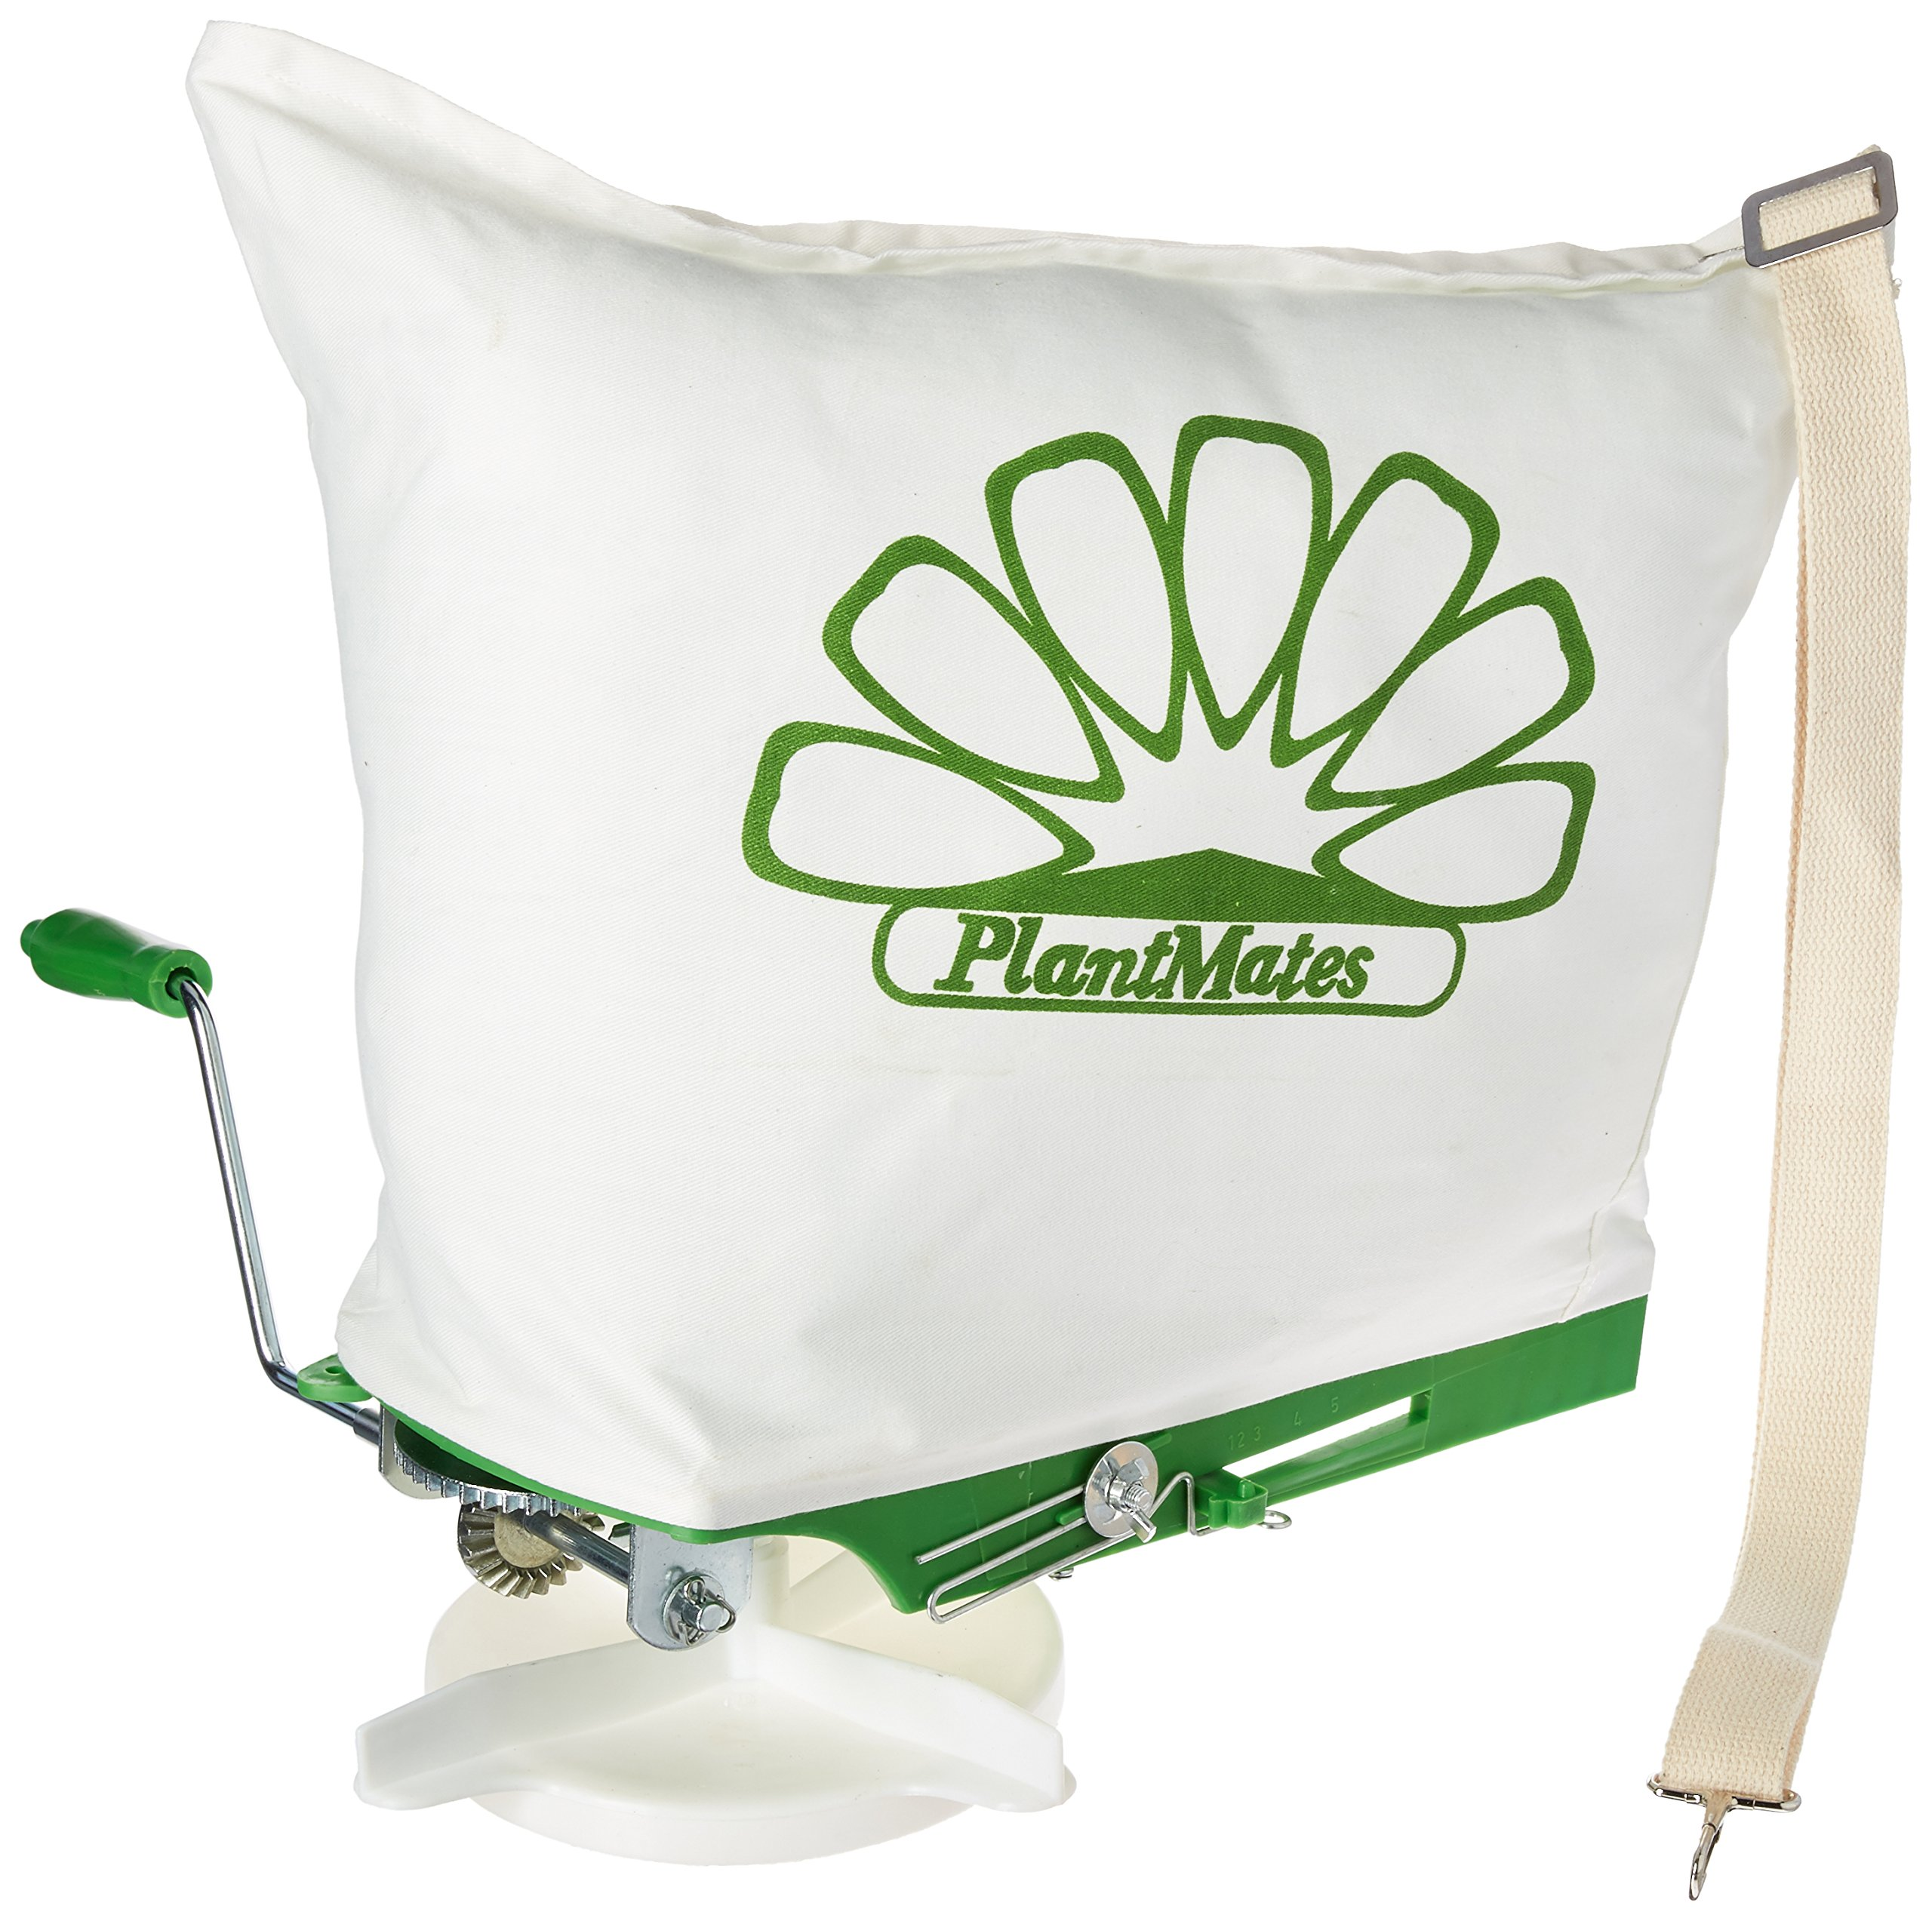 Plantmates 76300 25-Capacity Broadcast Spreader With Canvas Bag